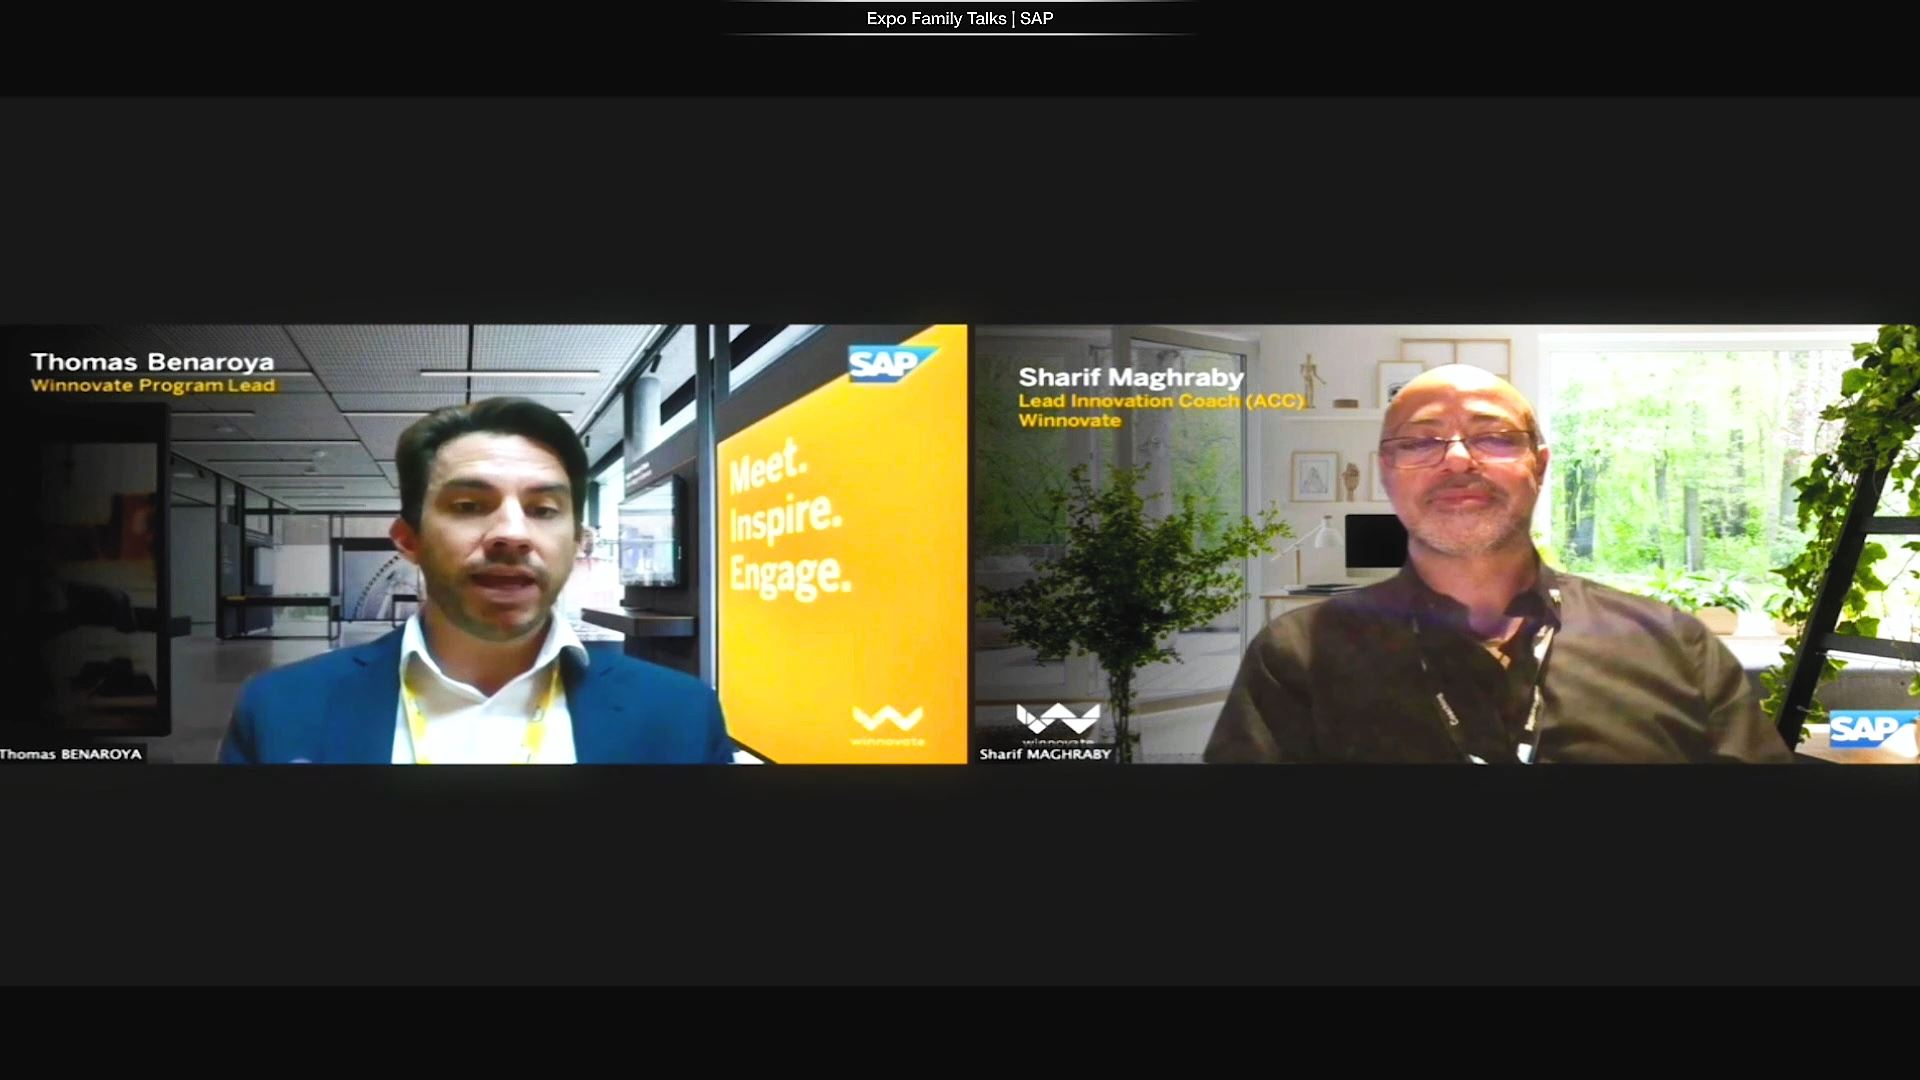 expo 2020 knowledge and learning week virtual event virtual discussion